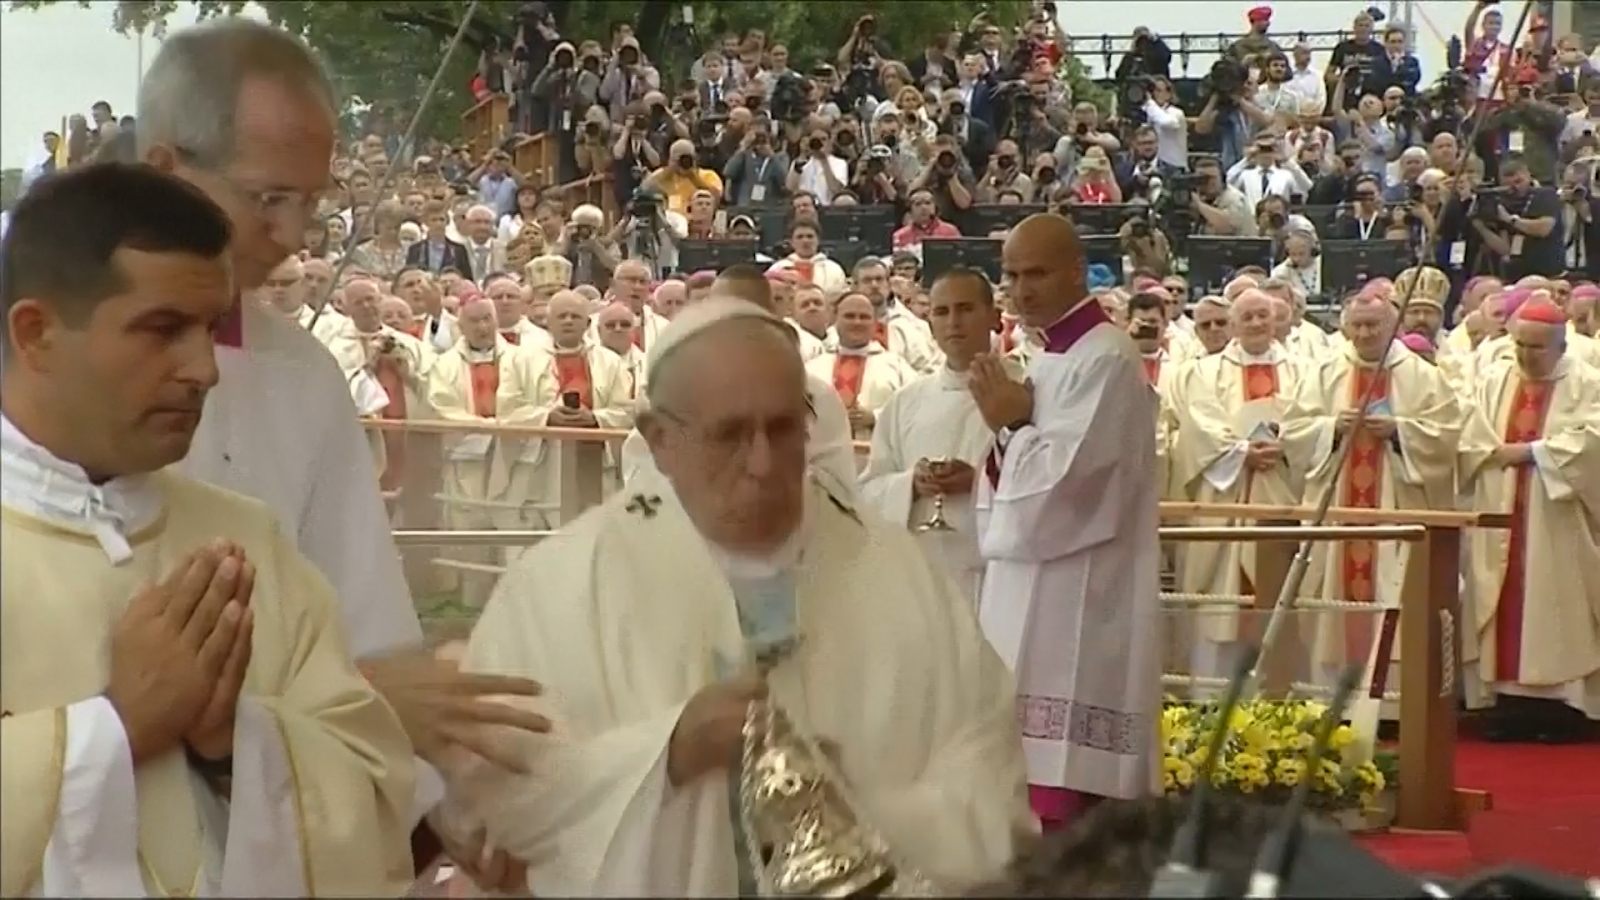 Pope Francis falls over